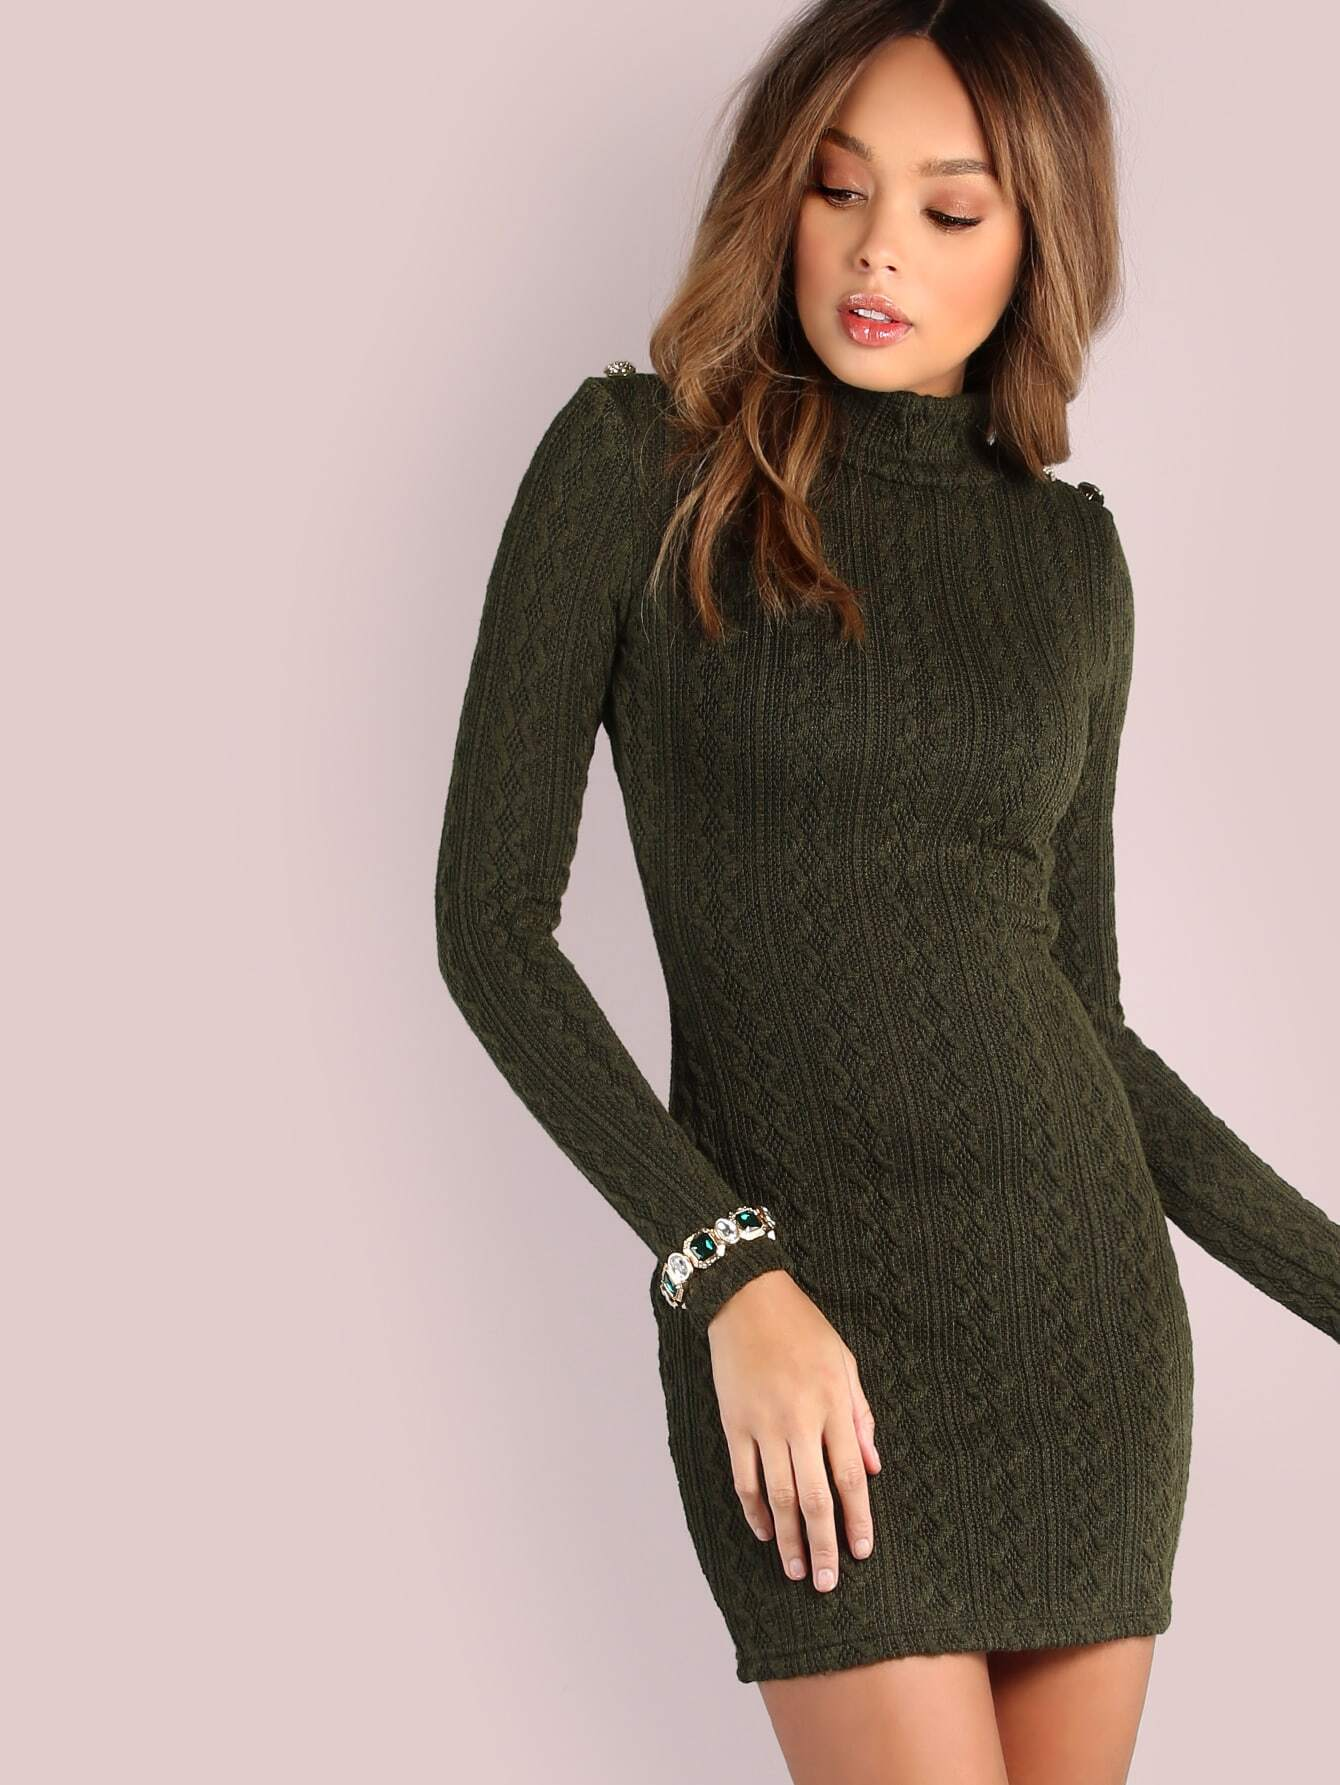 Long Sleeve Mock Cable Knit Dress Olive Shein Sheinside